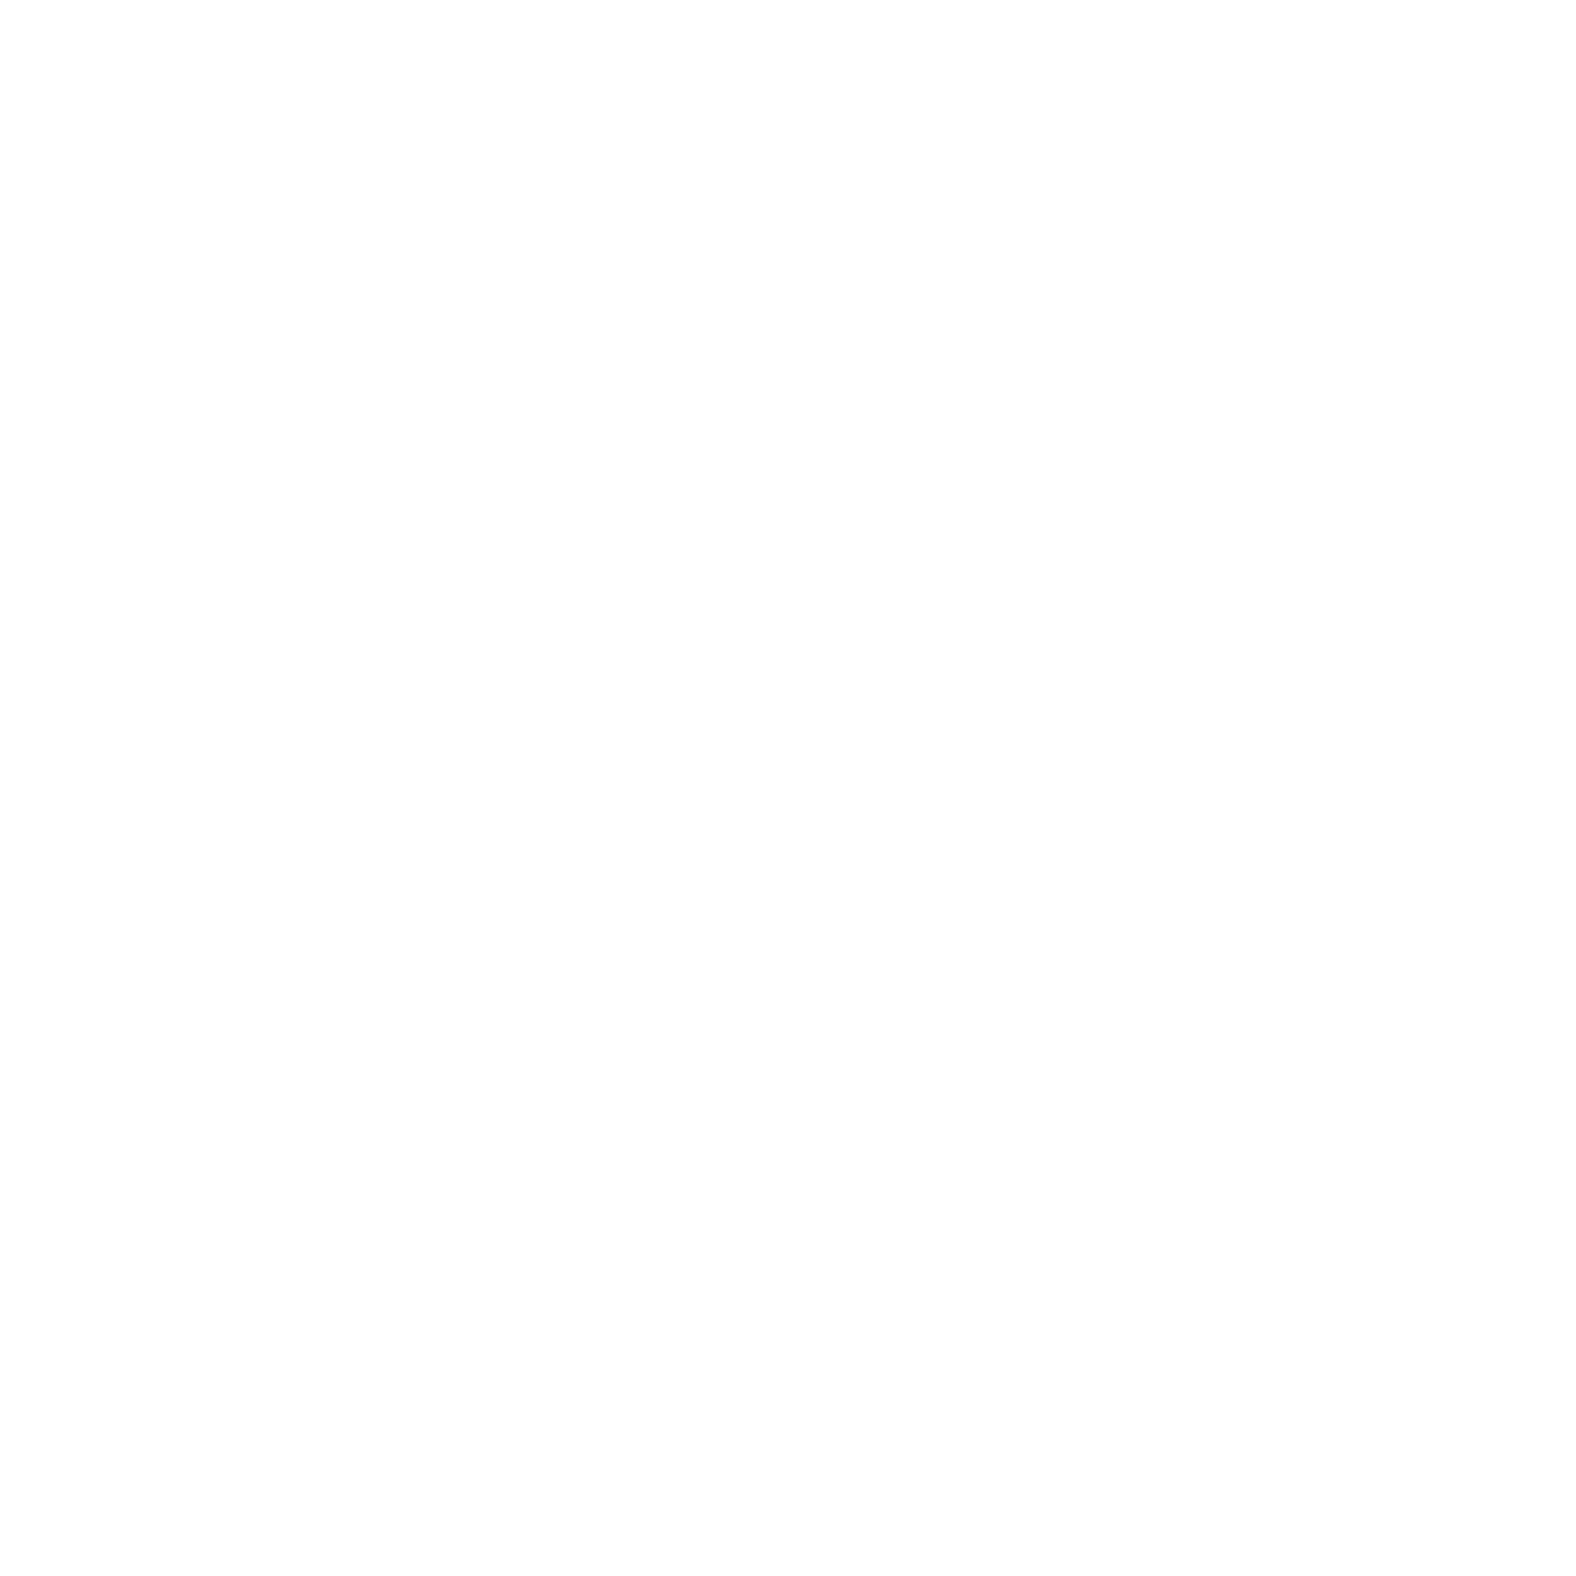 The Philly Special - vendor logo